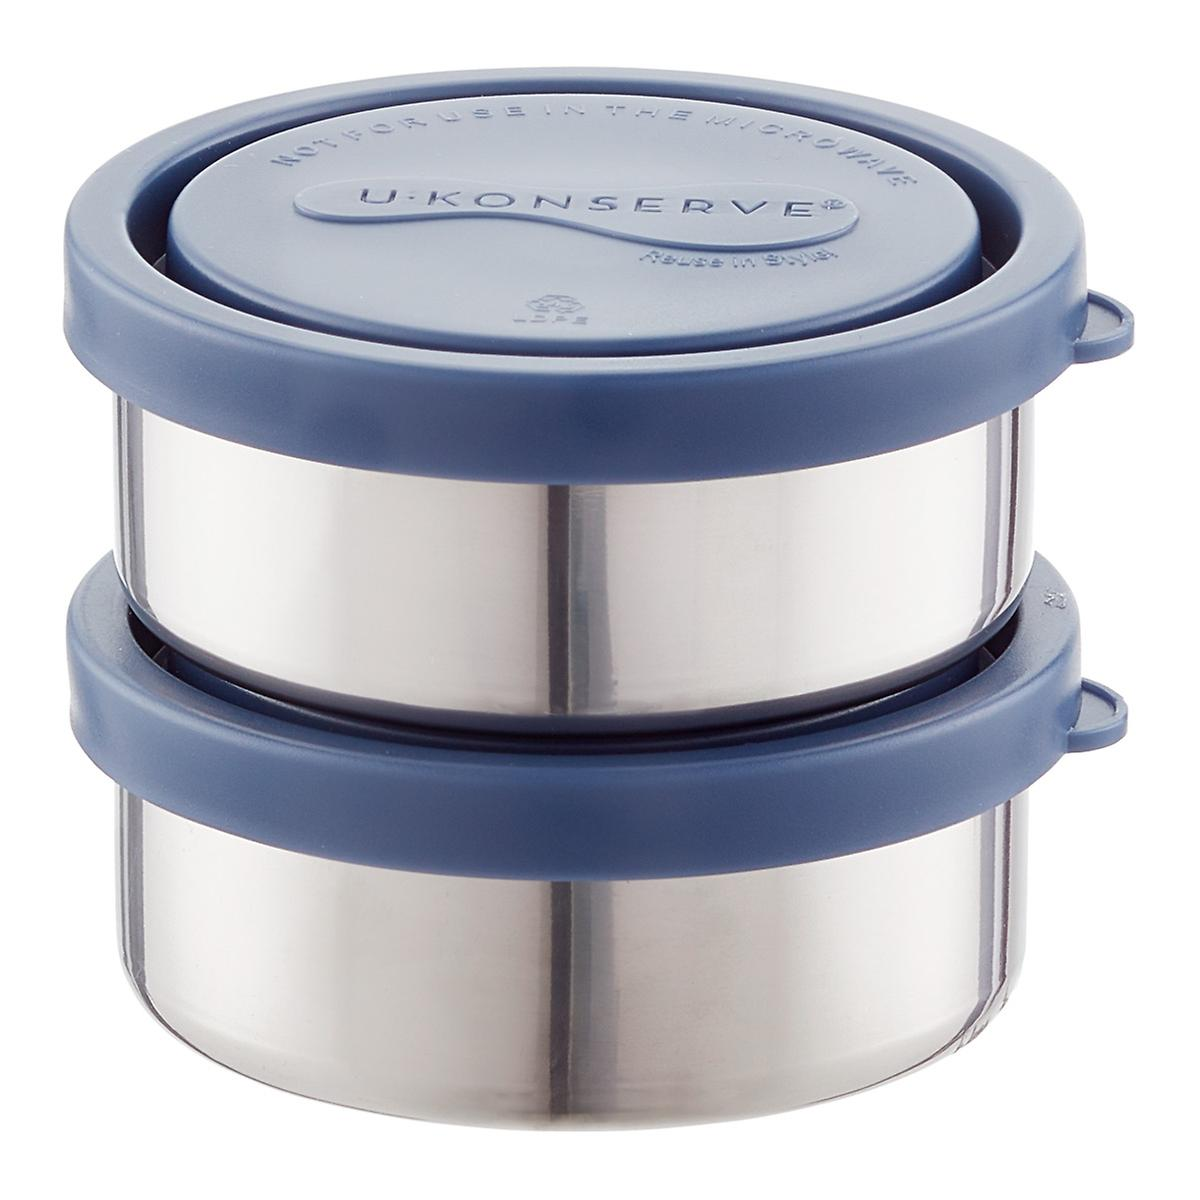 5 oz. Stainless Steel Containers